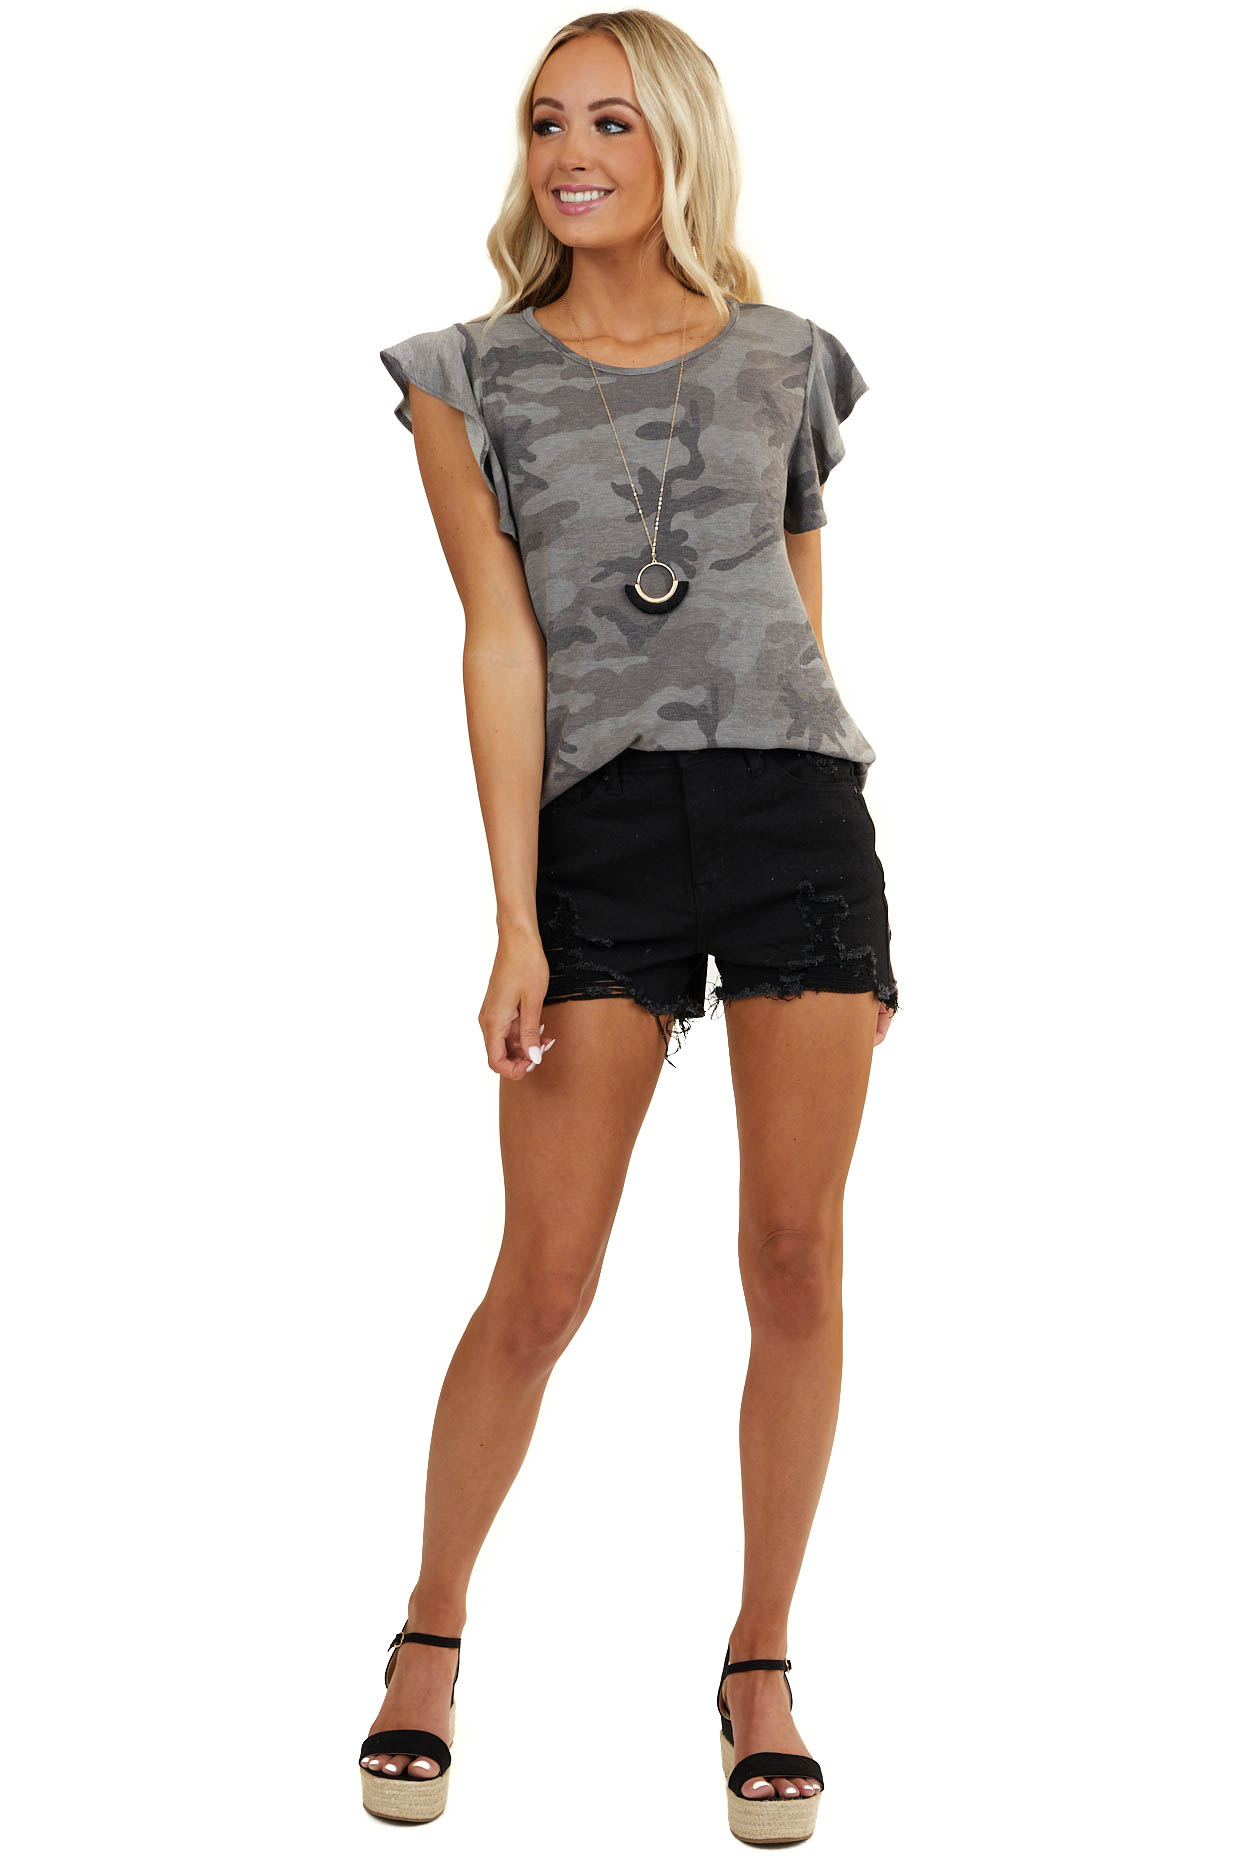 Ash Grey Camo Print Knit Top with Short Ruffled Sleeves